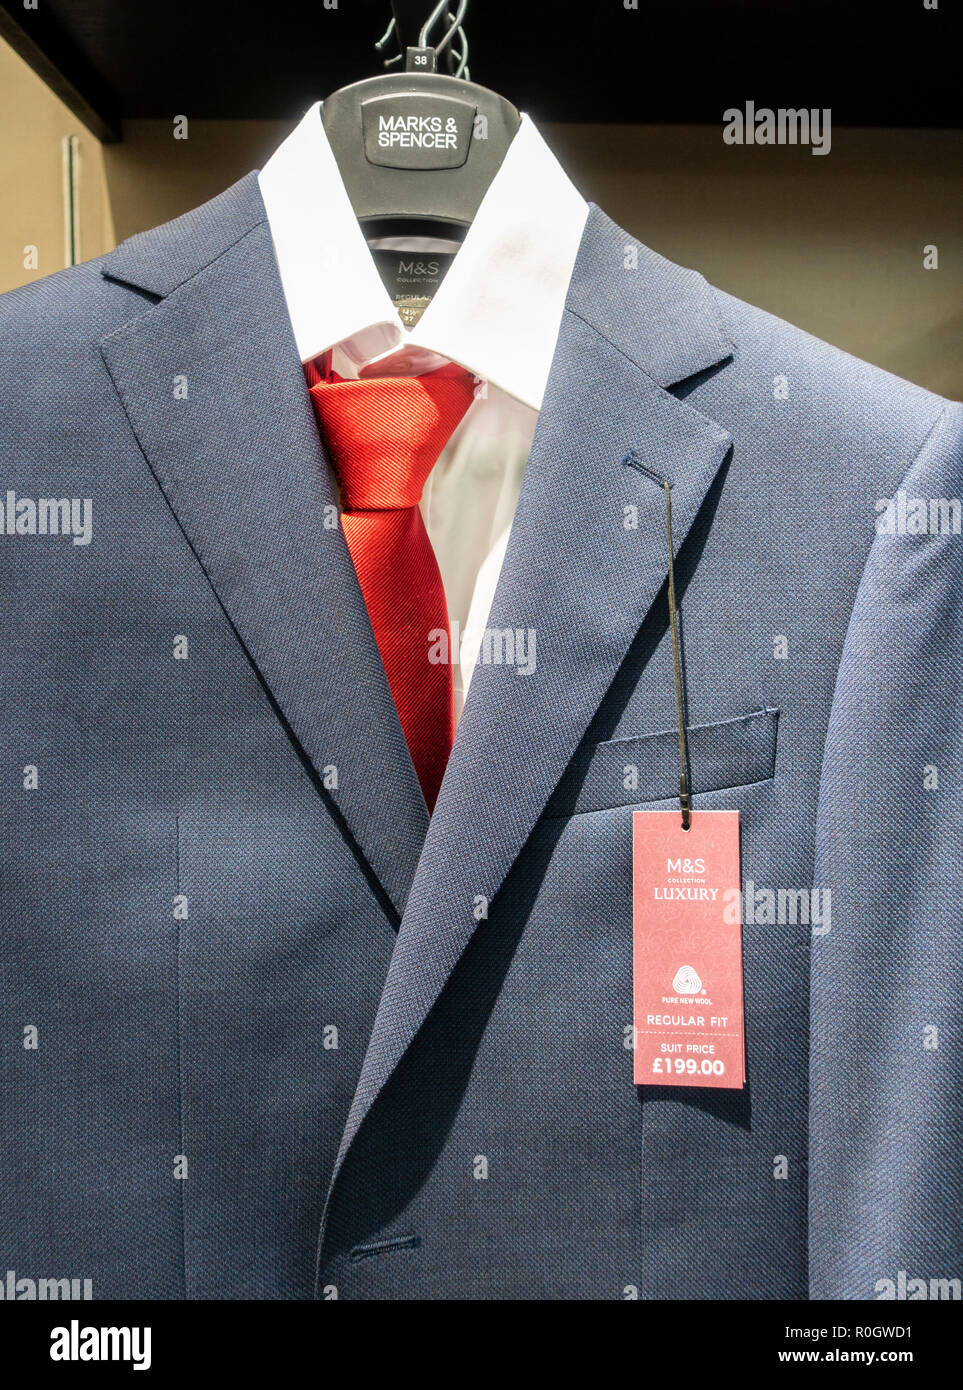 Mens Suits In M S Marks Spencer Store Uk Stock Photo Alamy